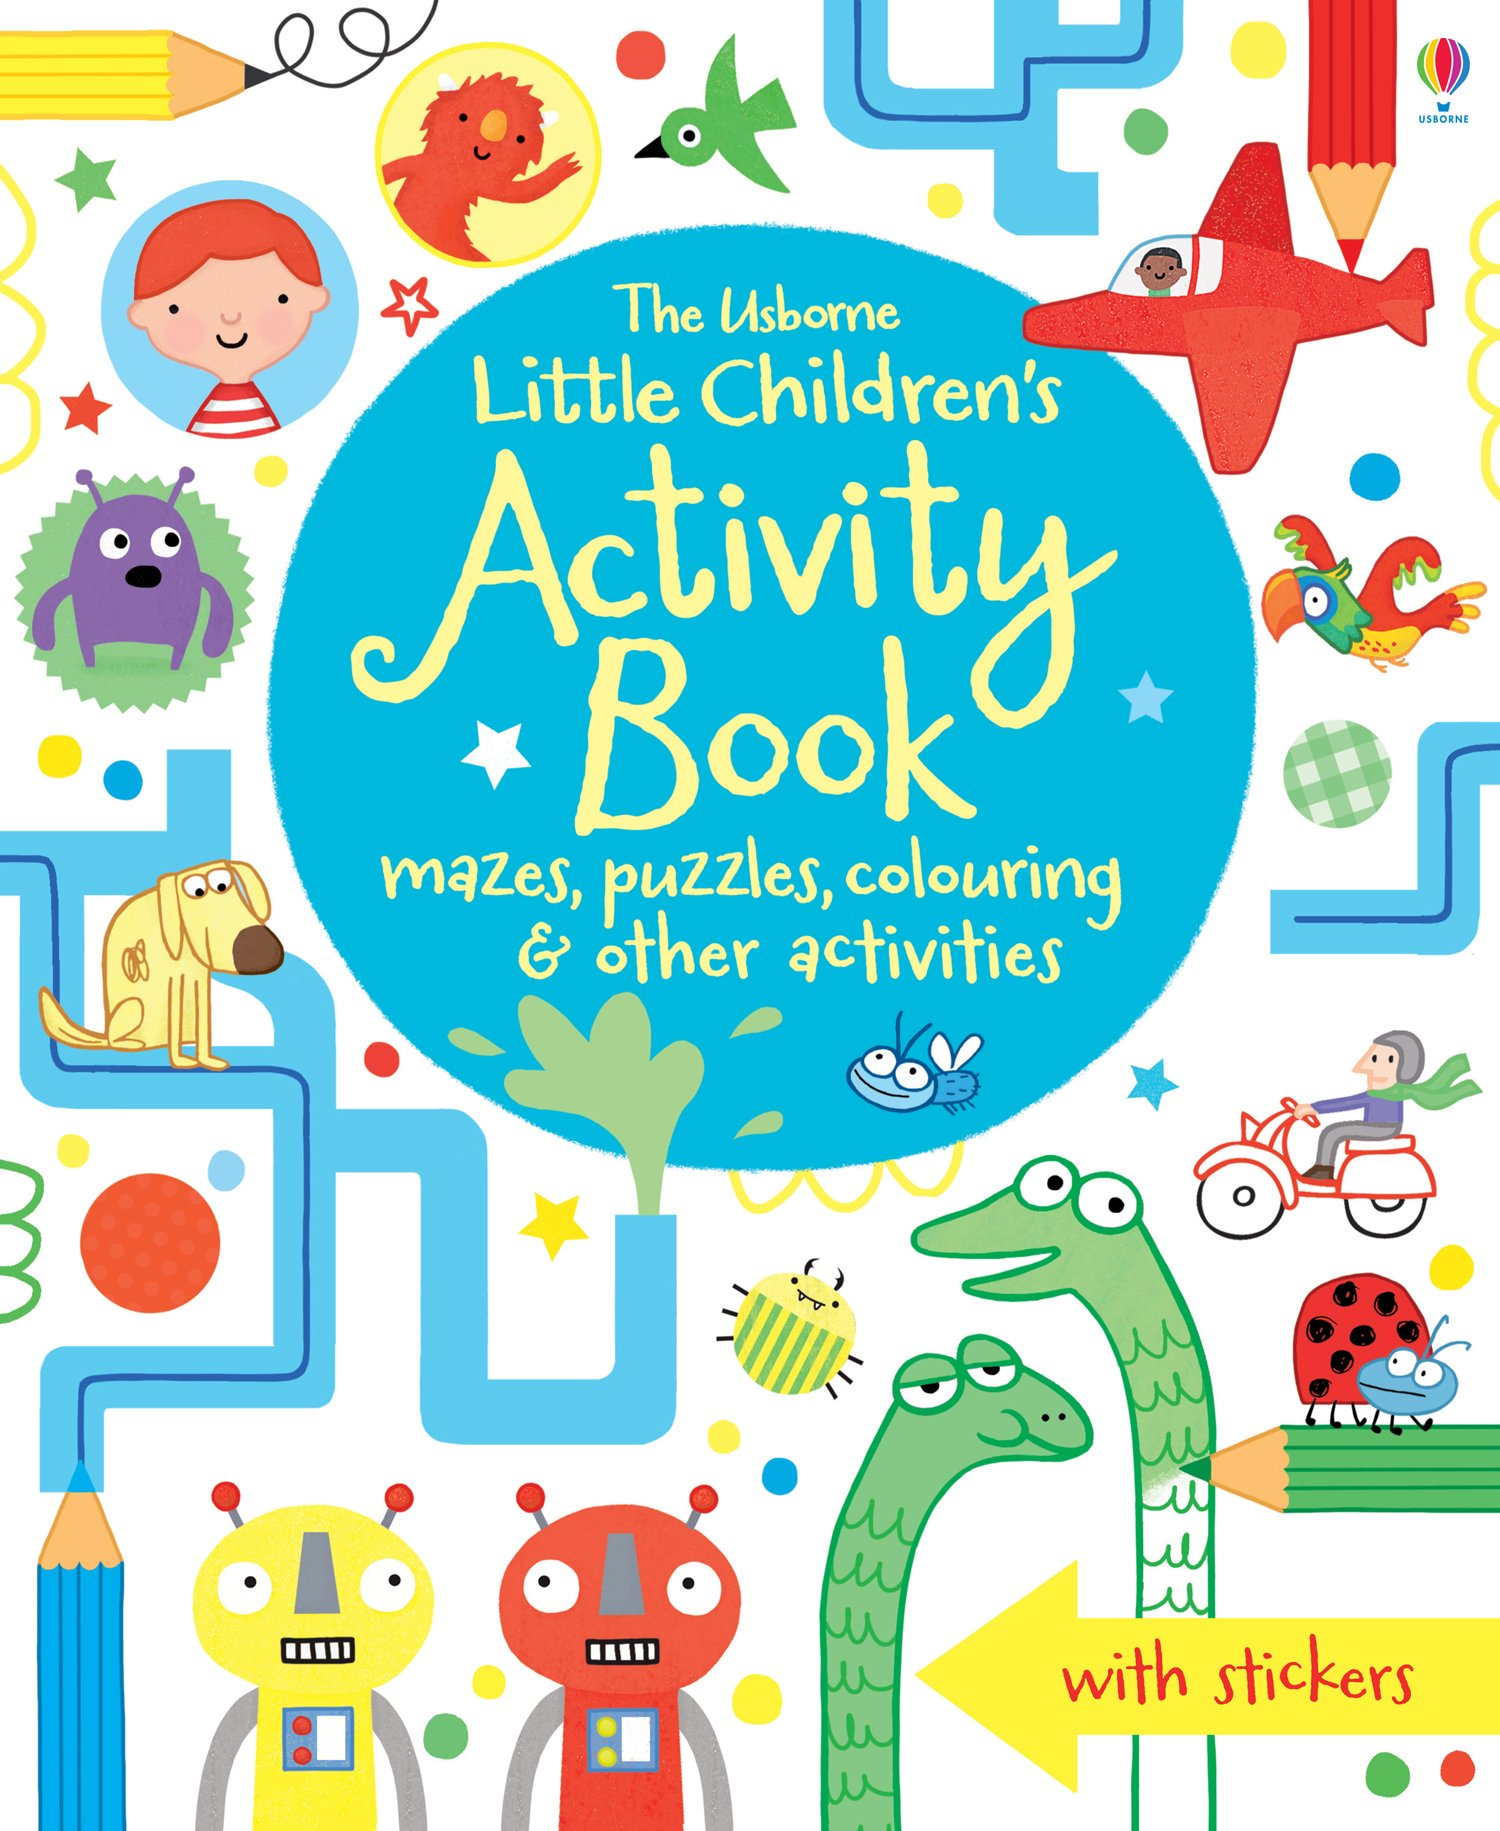 Uncategorized Child Puzzles little childrens activity book mazes puzzles and colouring amazon co uk various 8601410684075 books